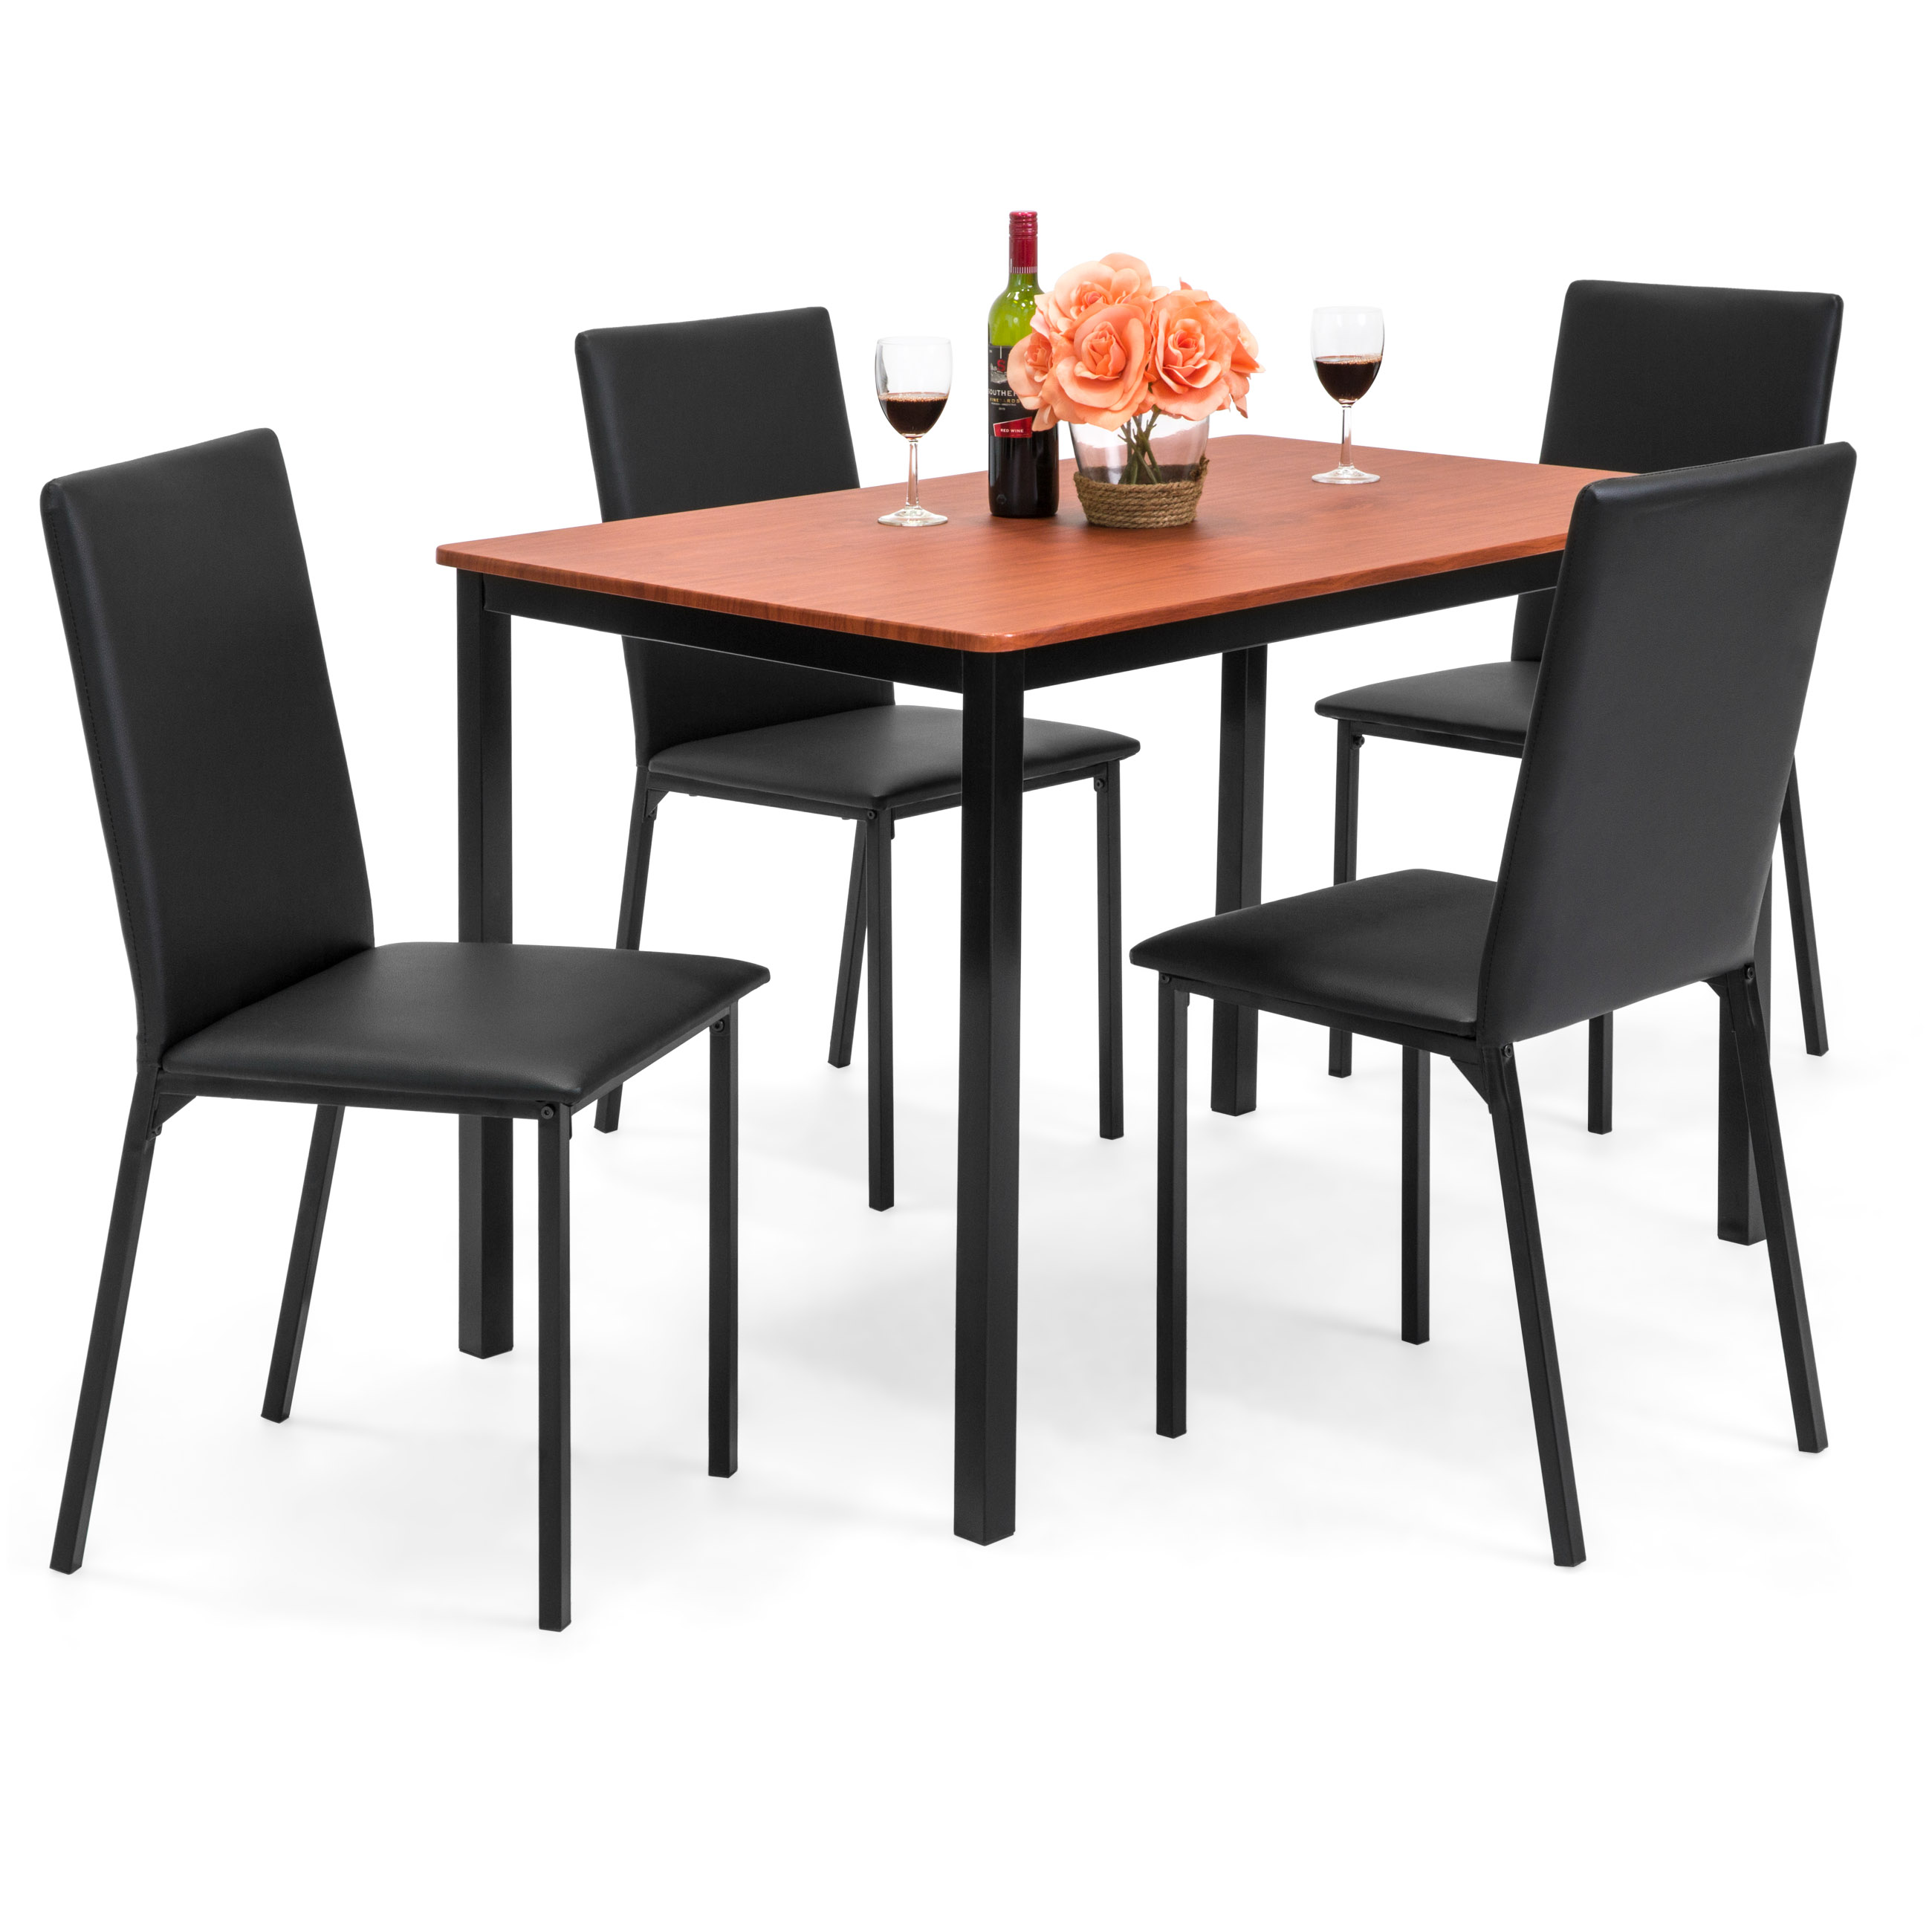 Best Choice Products 5 Piece Rectangle Dining Table Home Furniture Set W/ 4  Faux